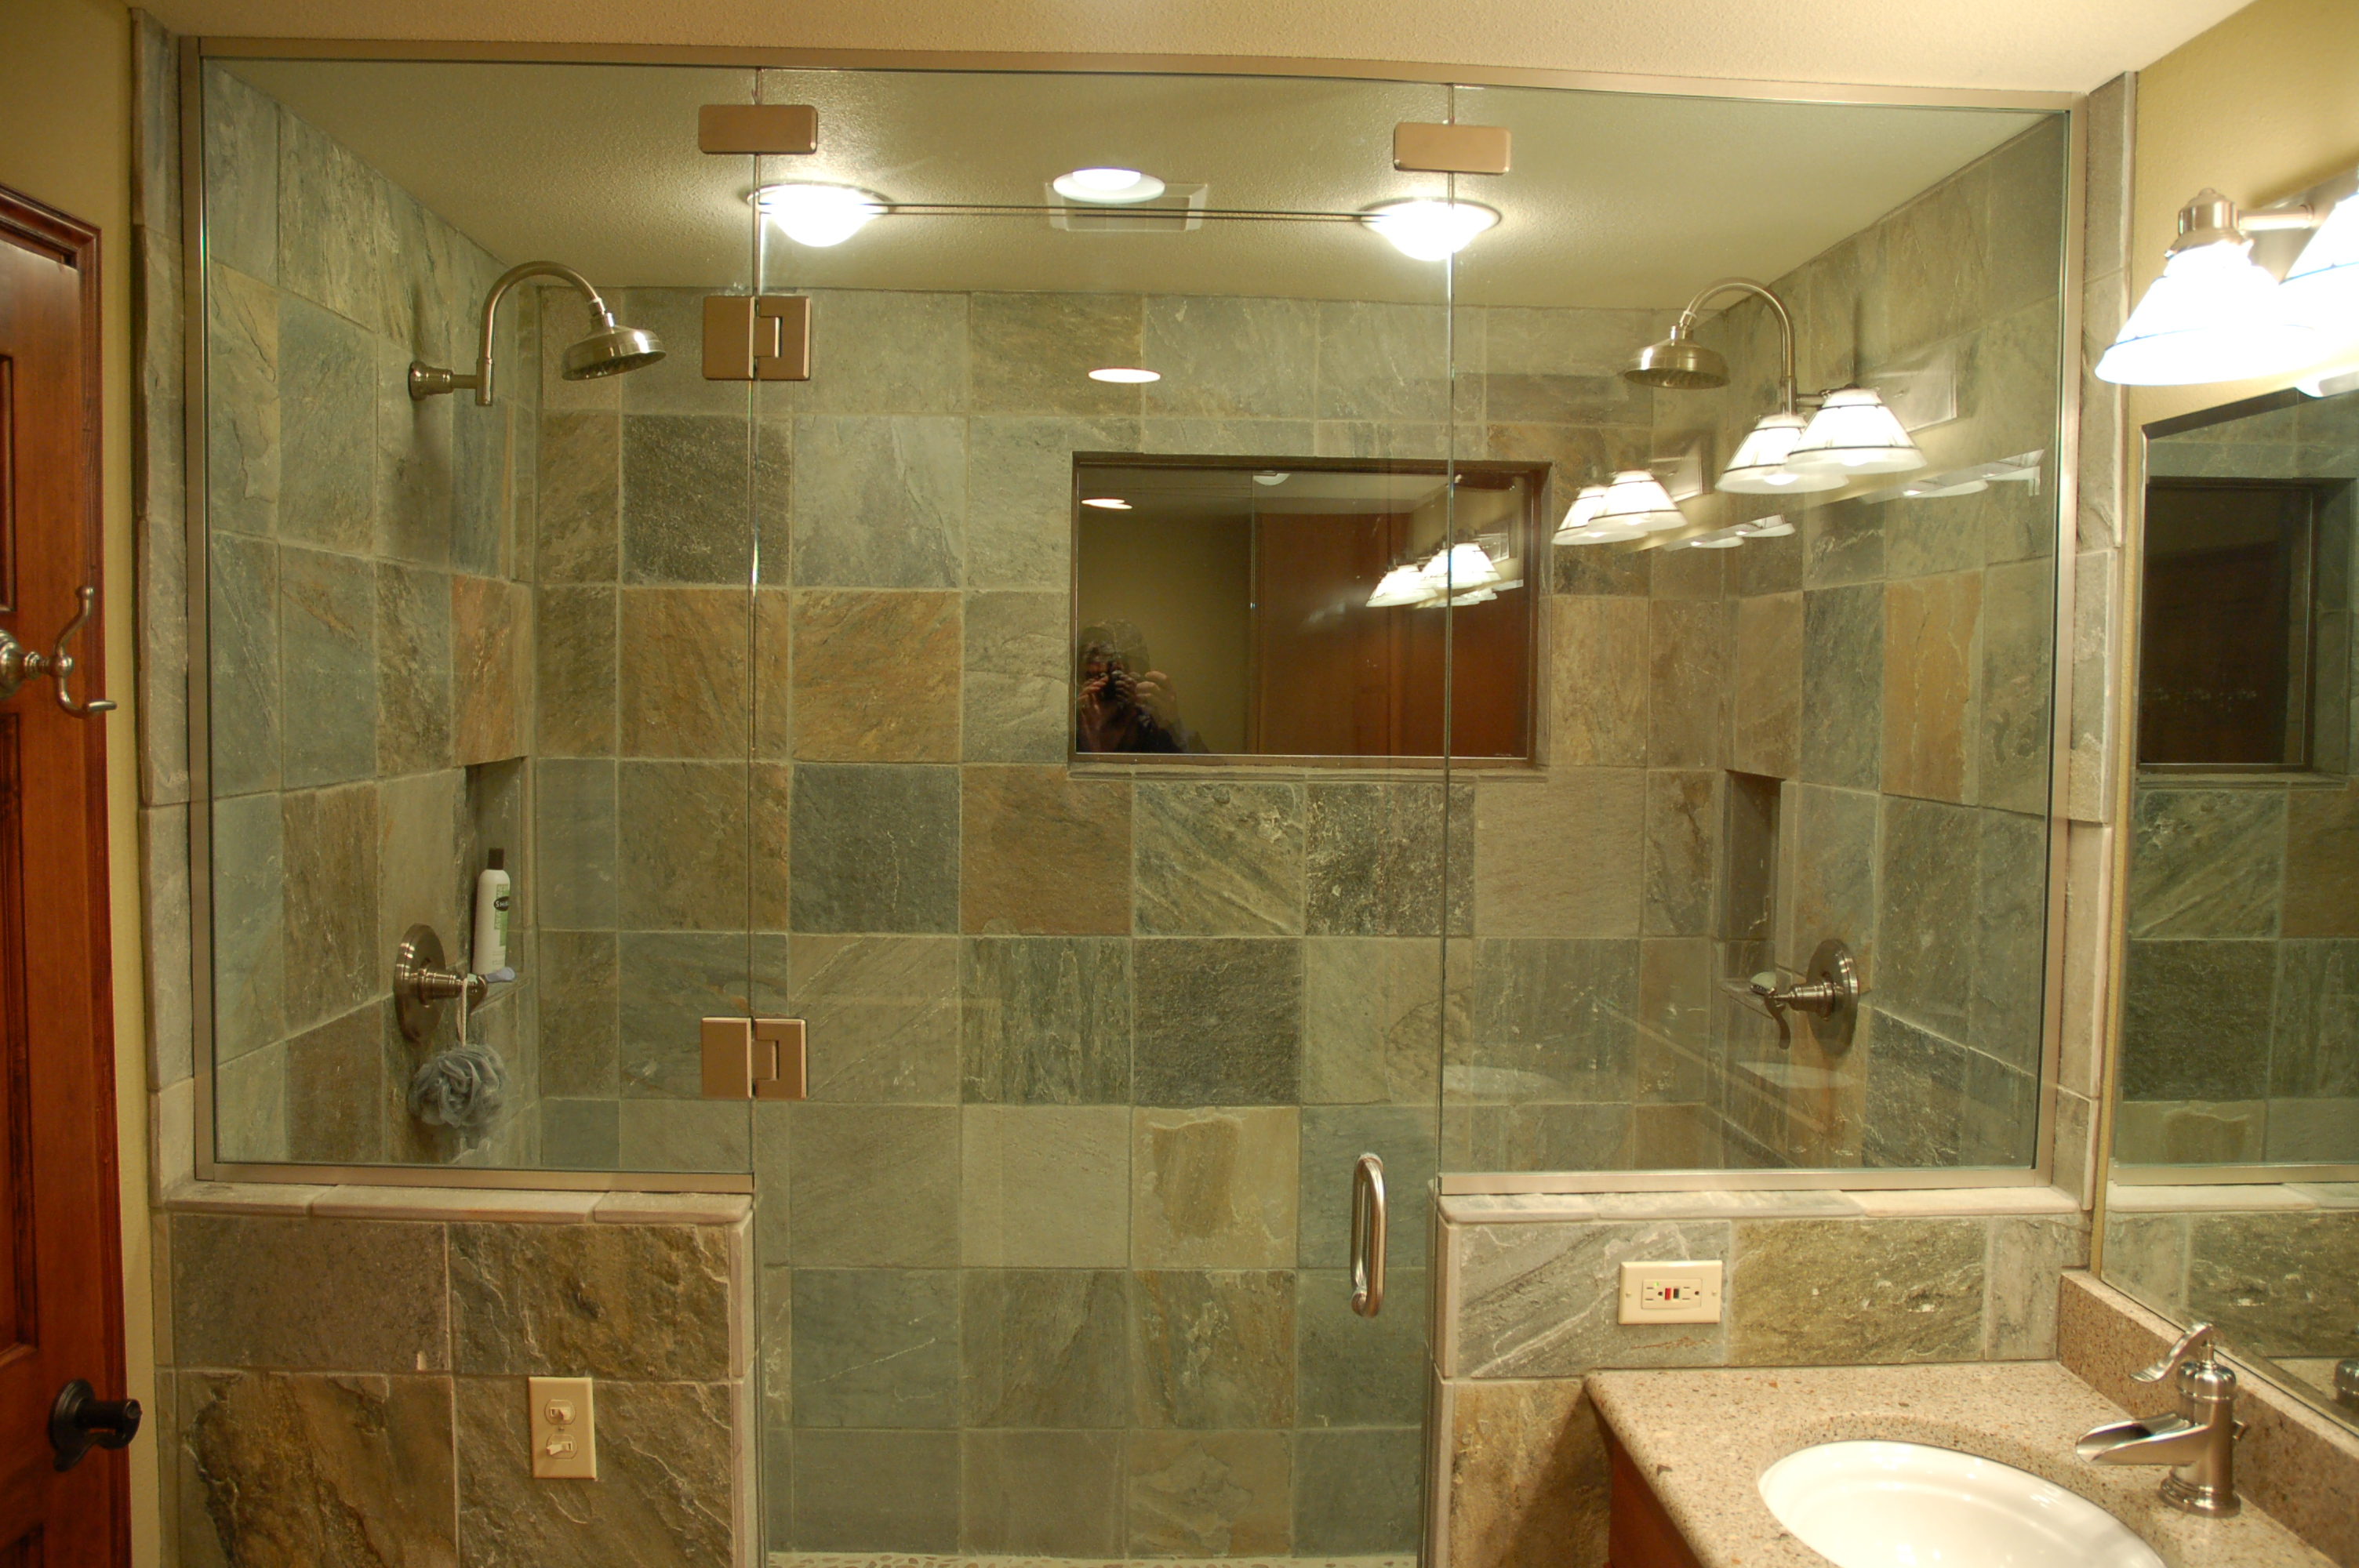 Slate bathroom tile benefits bathroom slate tiles Images of bathroom tile floors